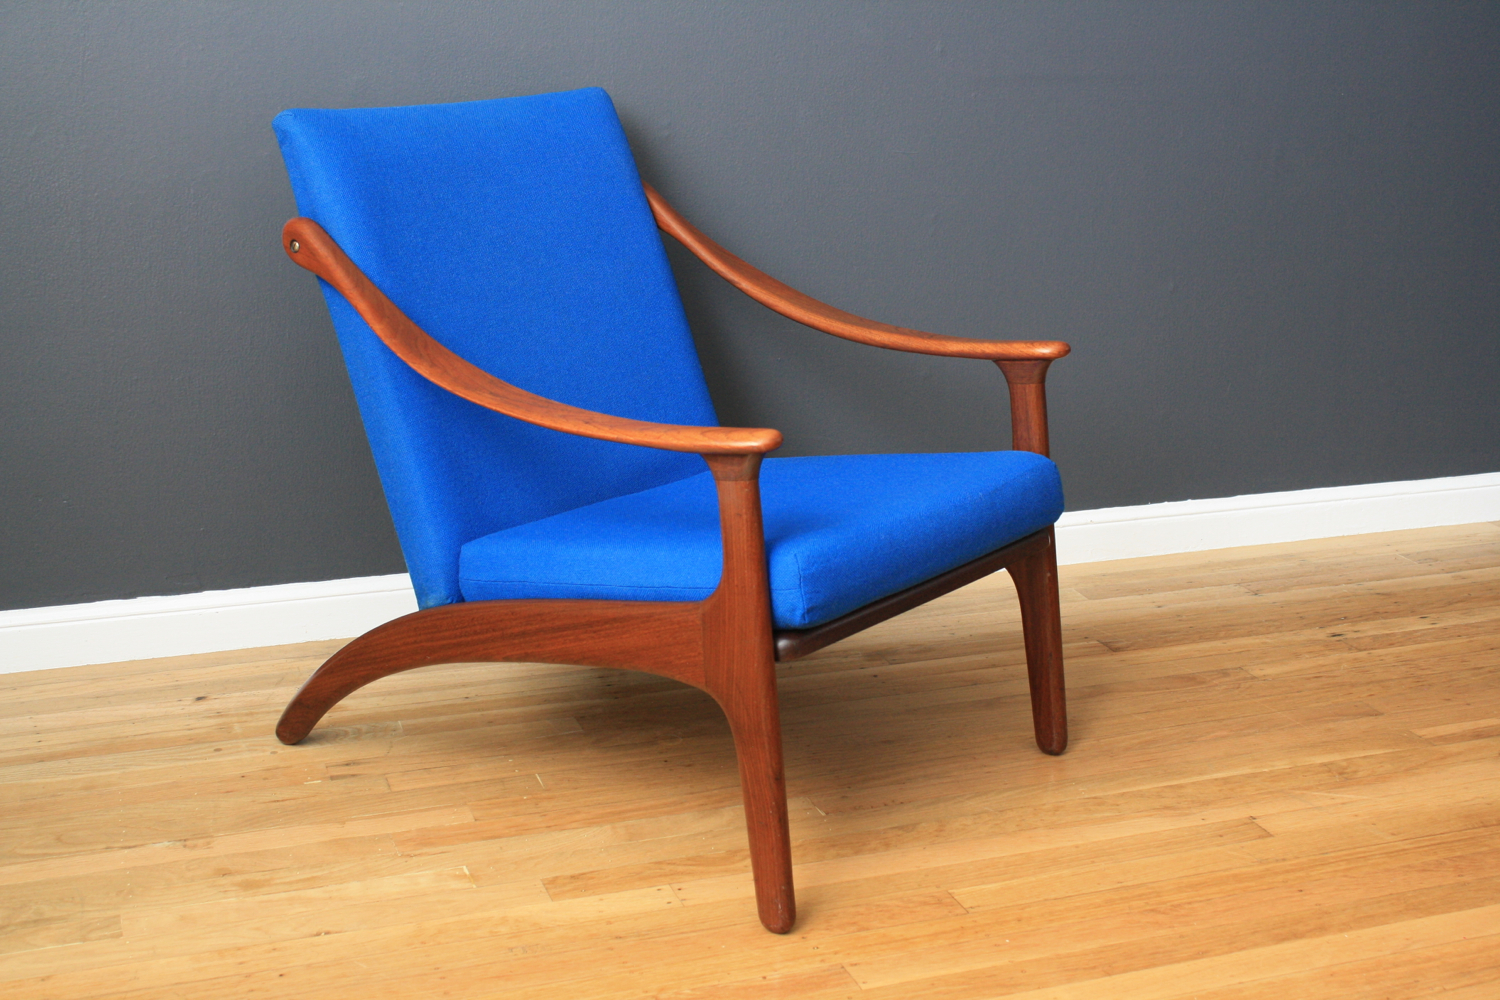 Danish Modern Lounge Chair by Arne Hovmand-Olsen